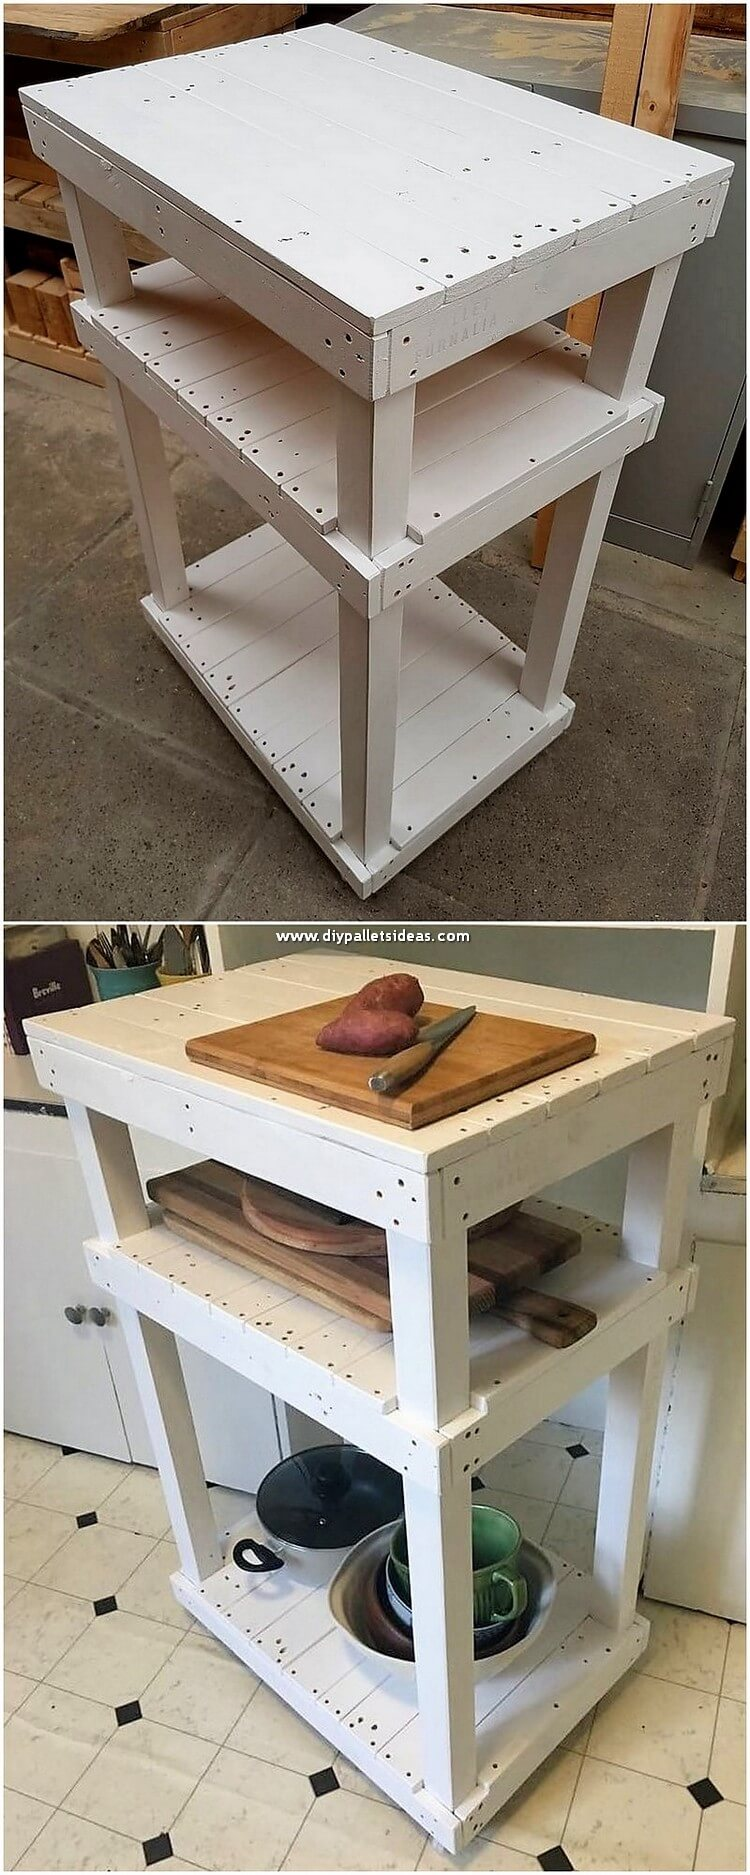 Pallet Table for Kitchen Use